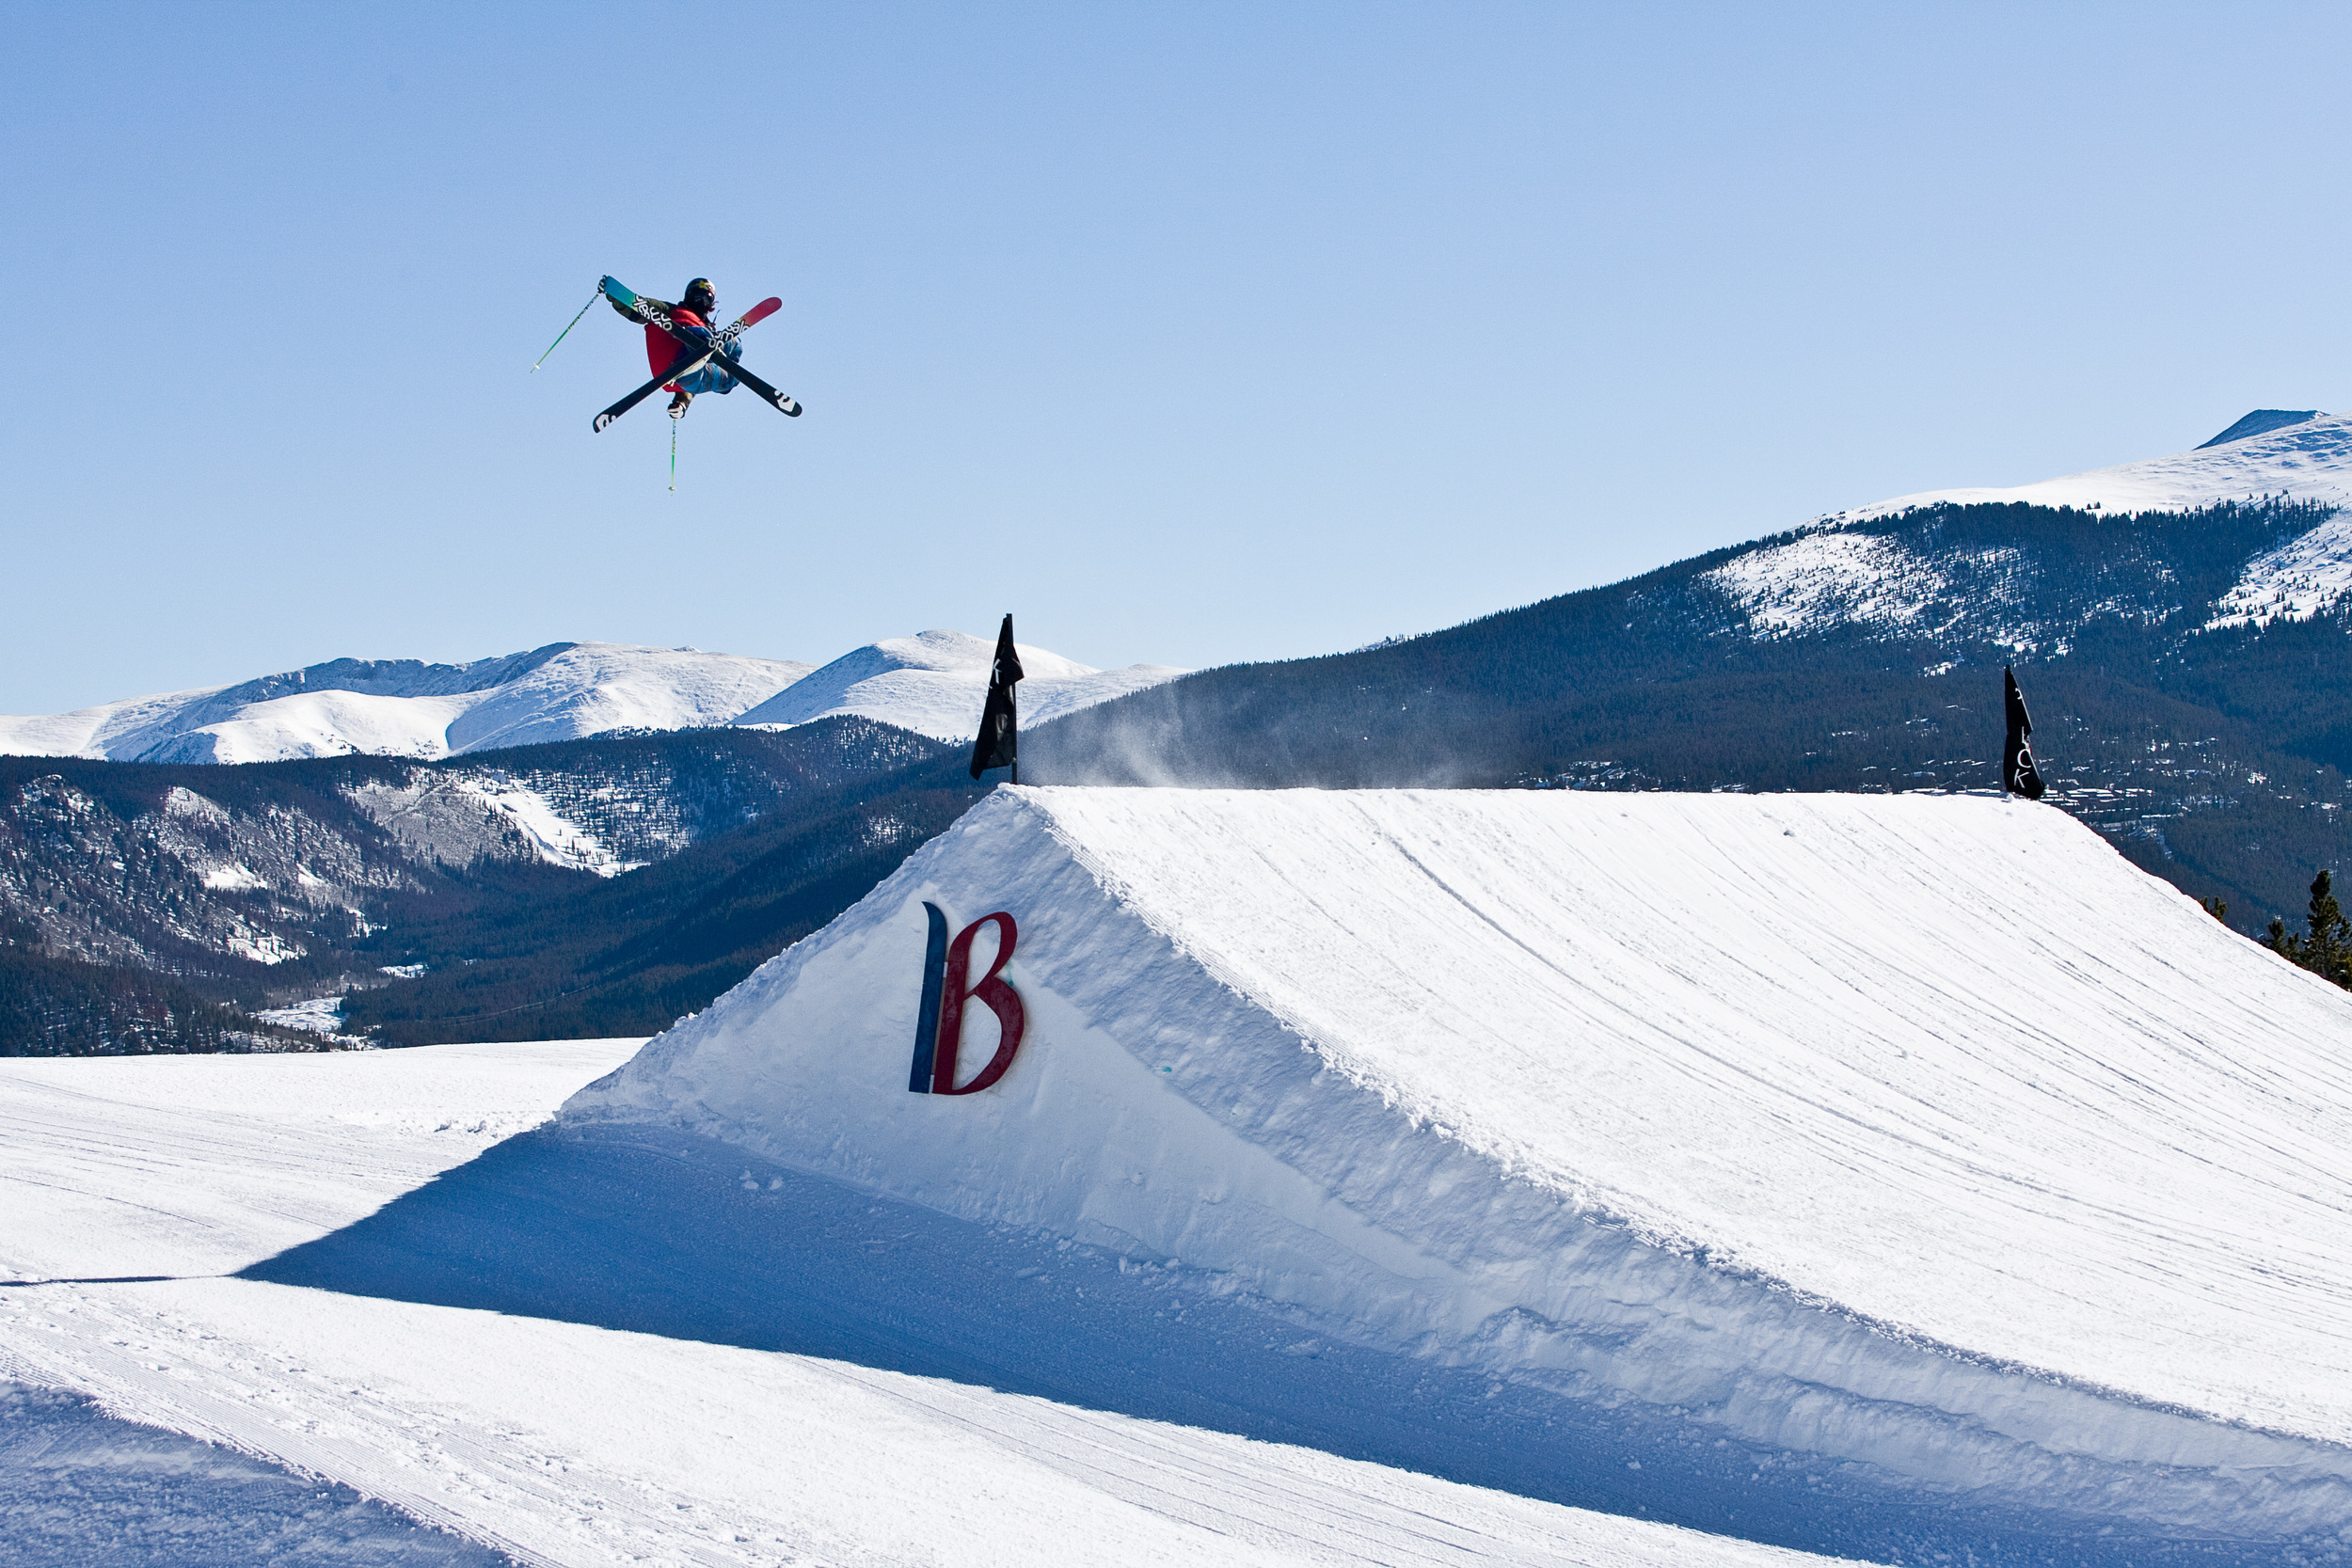 Breckenridge rocks four terrain parks and a 22-foot superpipe. (Aaron Dodds)